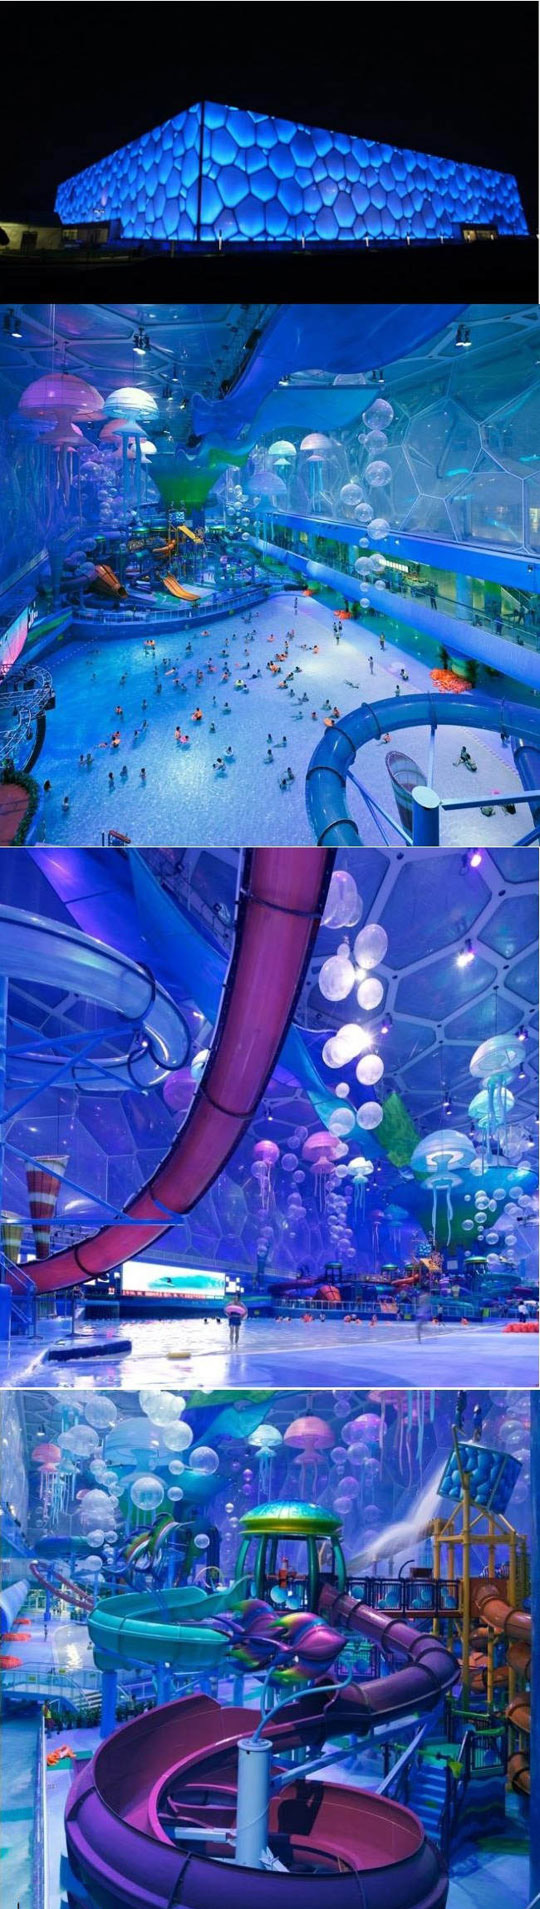 The China Olympic Cube turned into an indoor water park